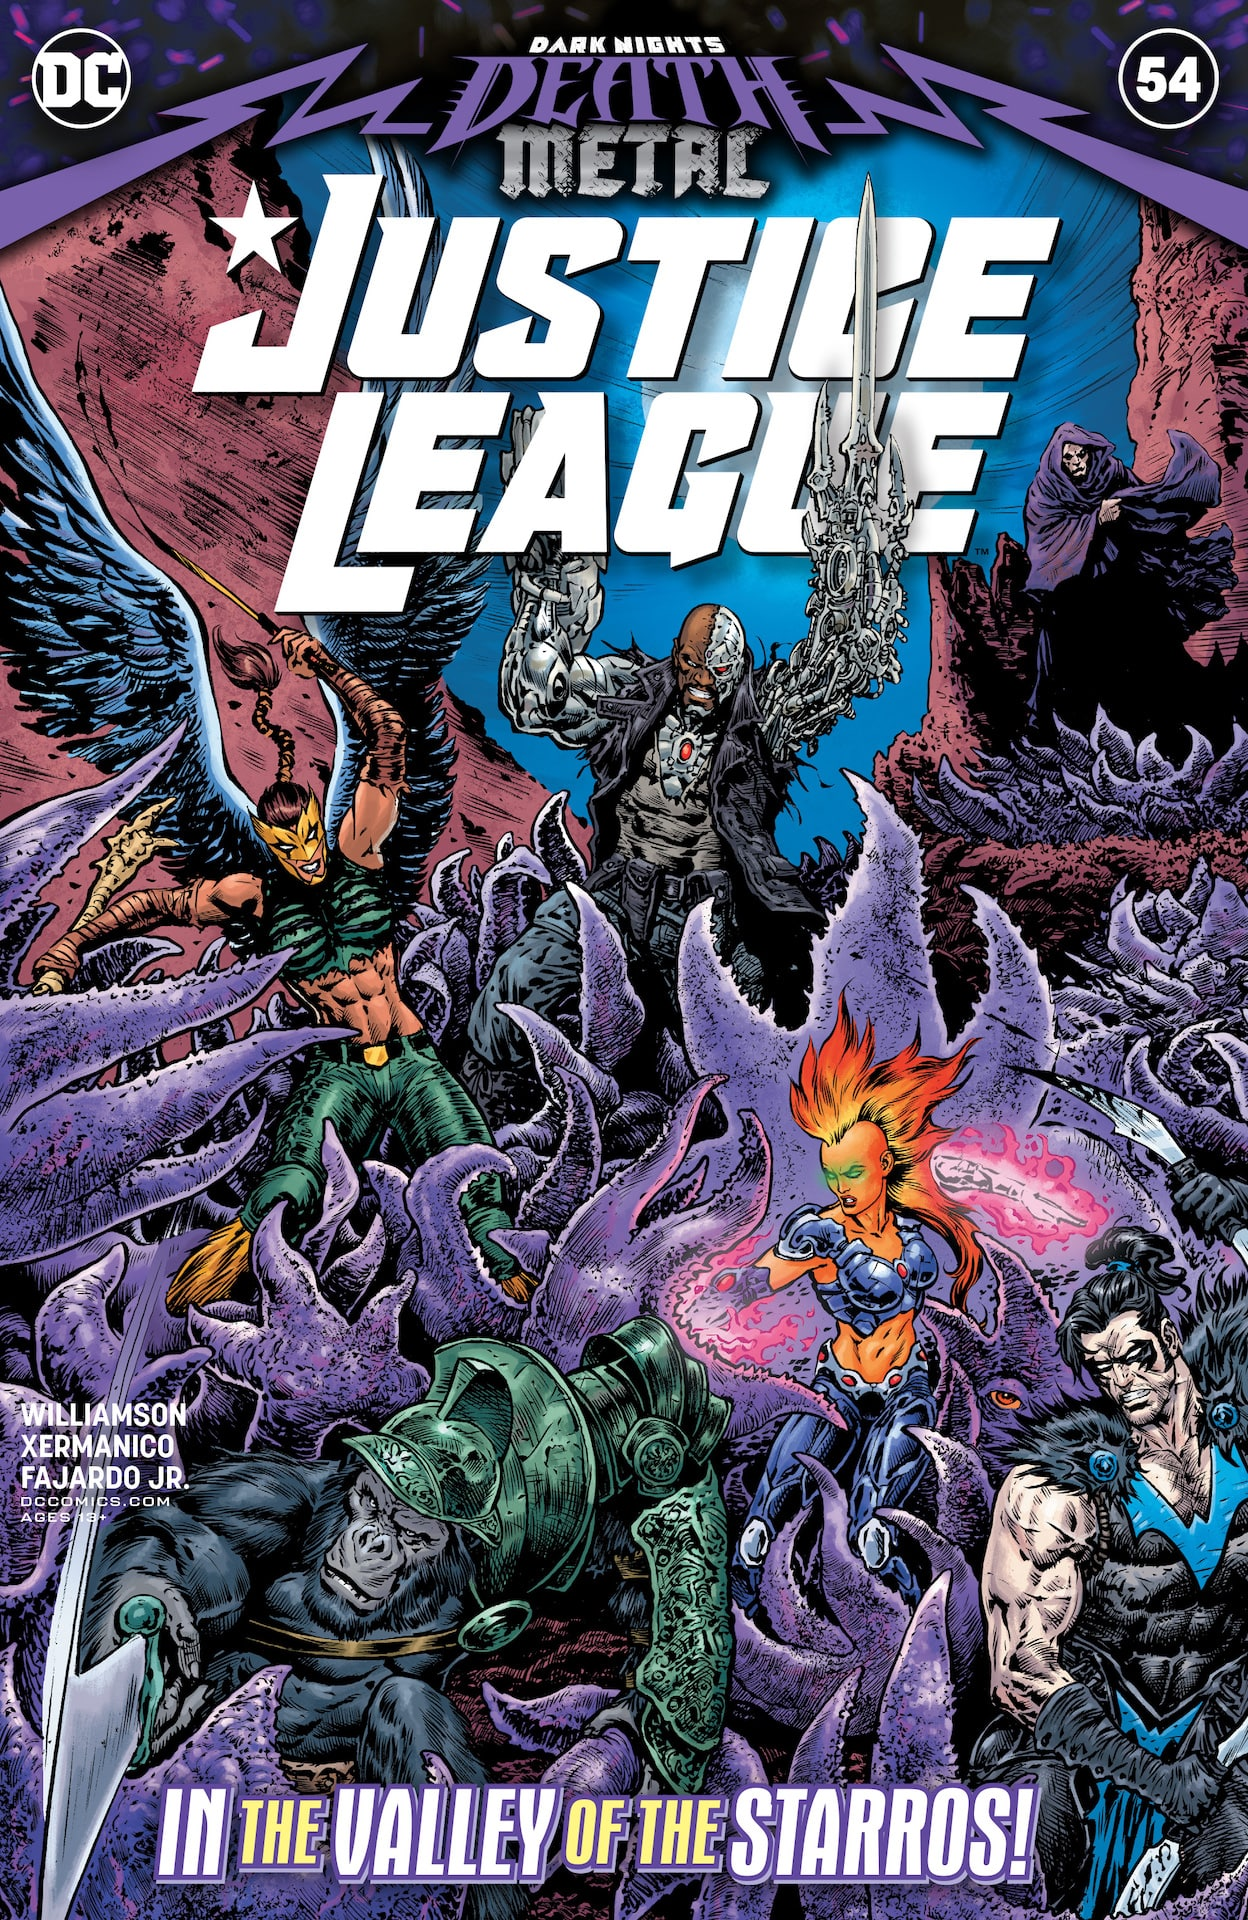 DC Preview: Justice League #54